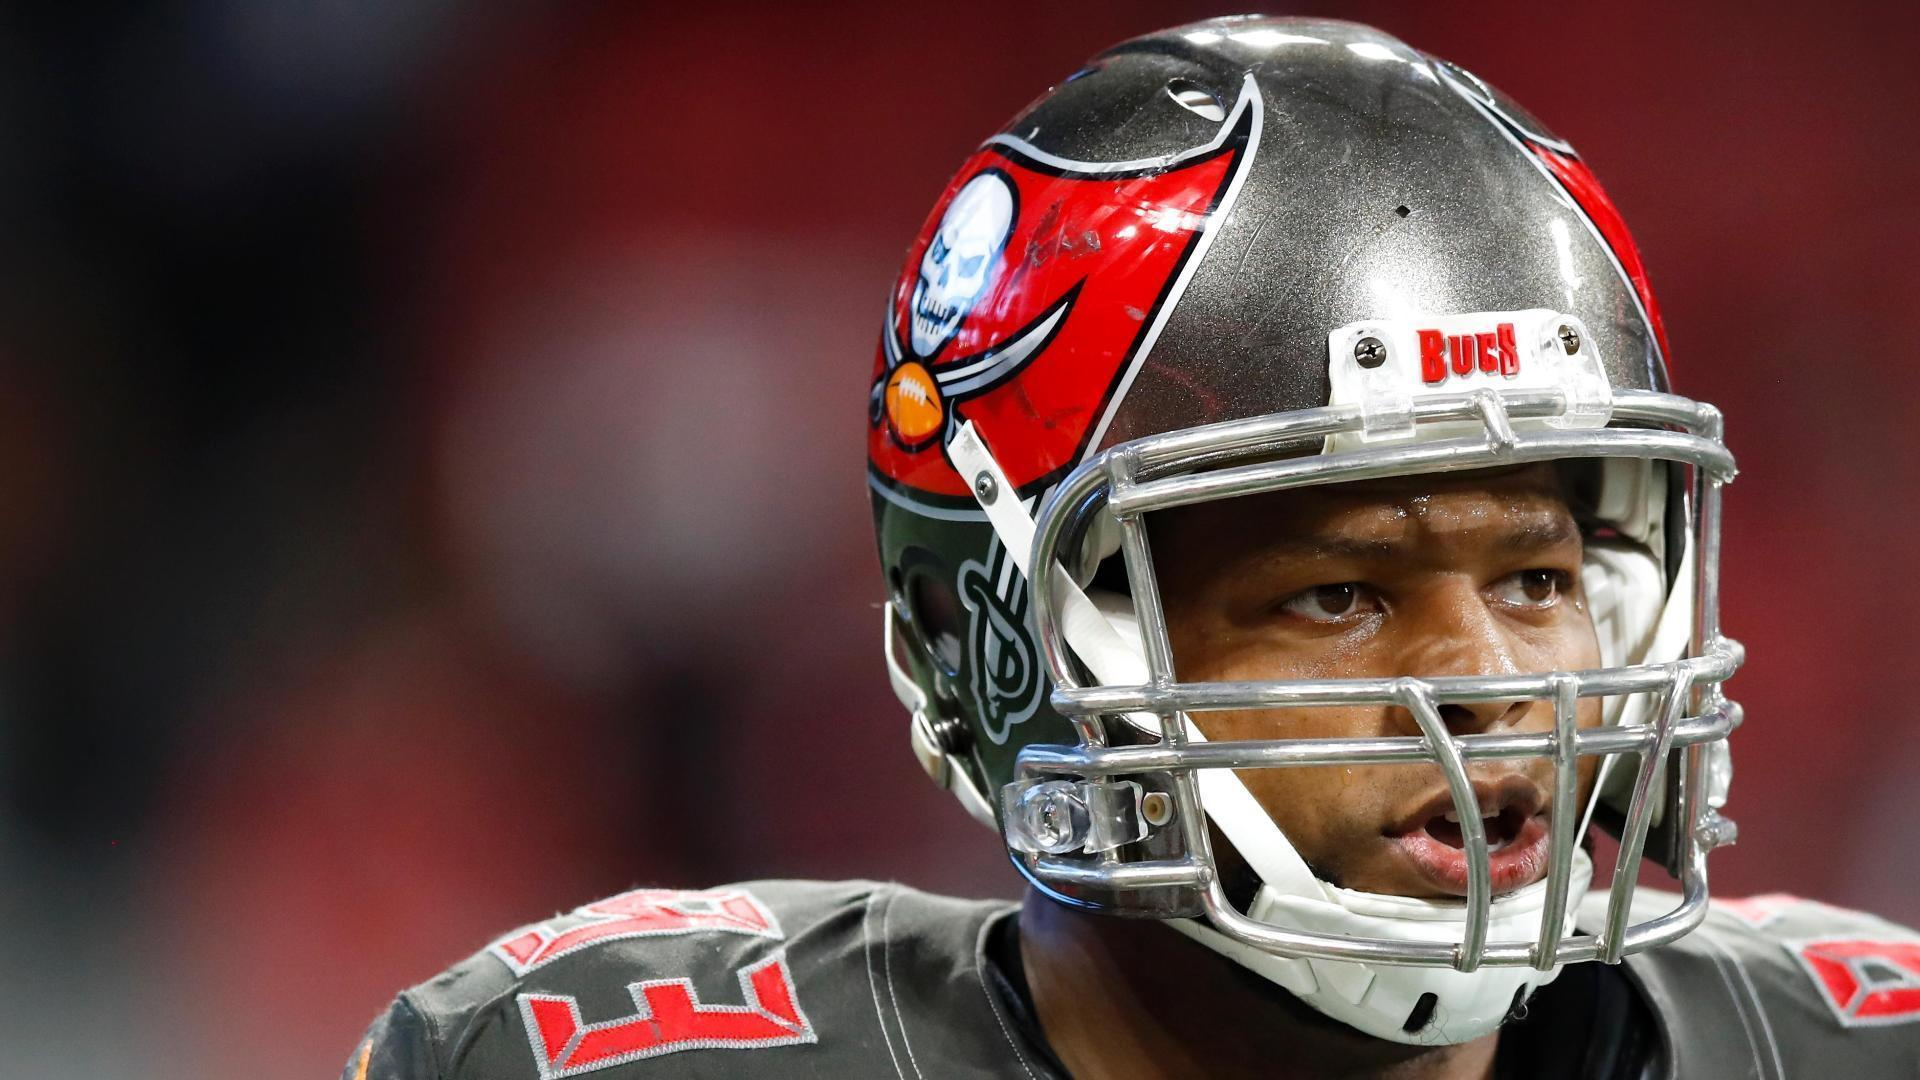 Suh returning to Bucs on one-year deal